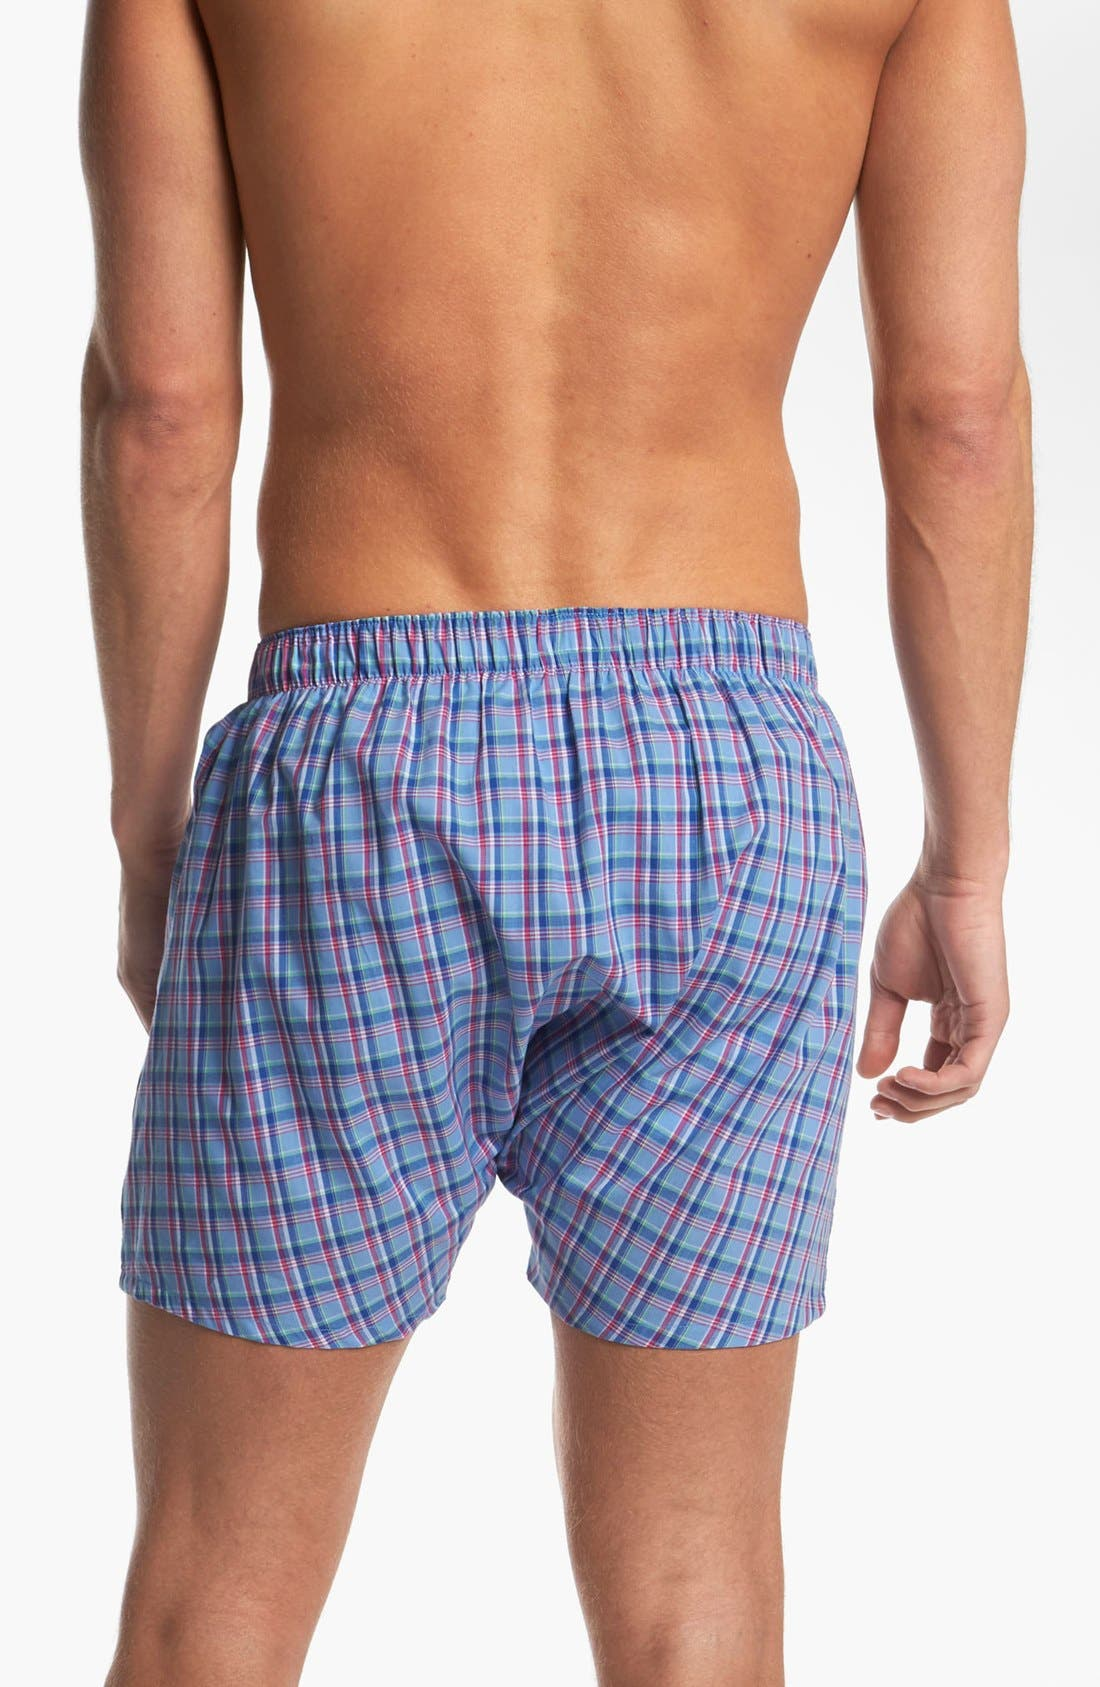 Alternate Image 2  - Polo Ralph Lauren Woven Boxers (Assorted 3-Pack)